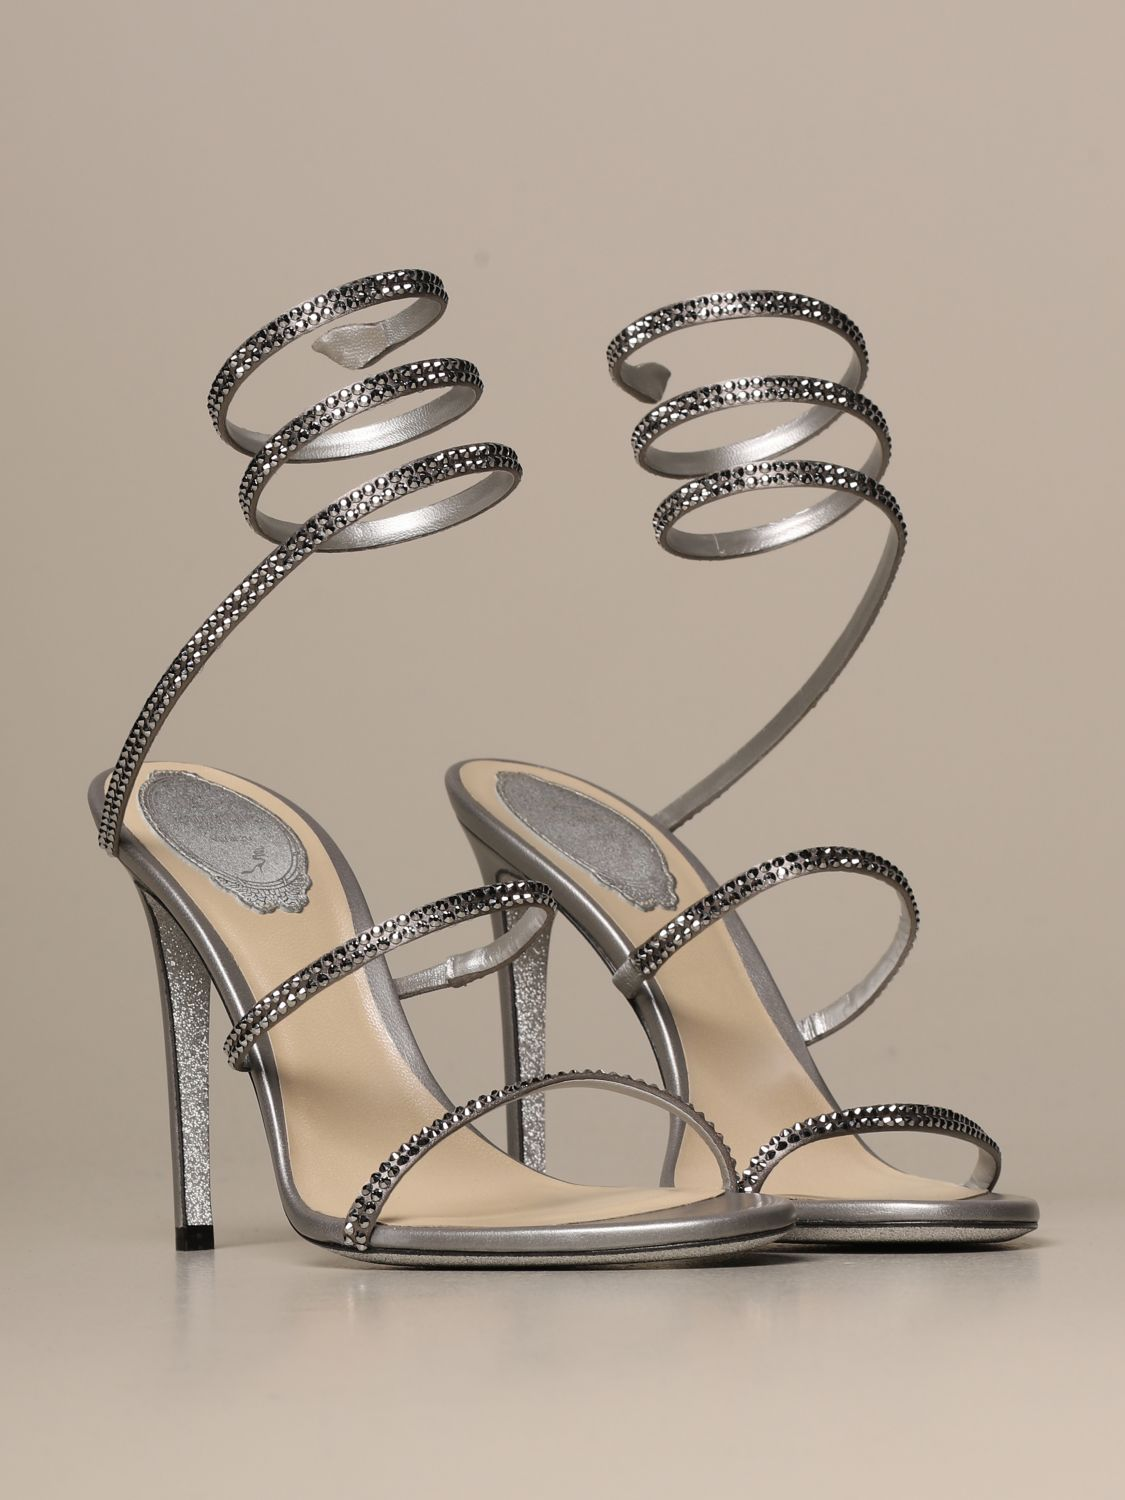 Heeled sandals Rene Caovilla: Cleo Snake René Caovilla sandal in satin with crystals silver 2